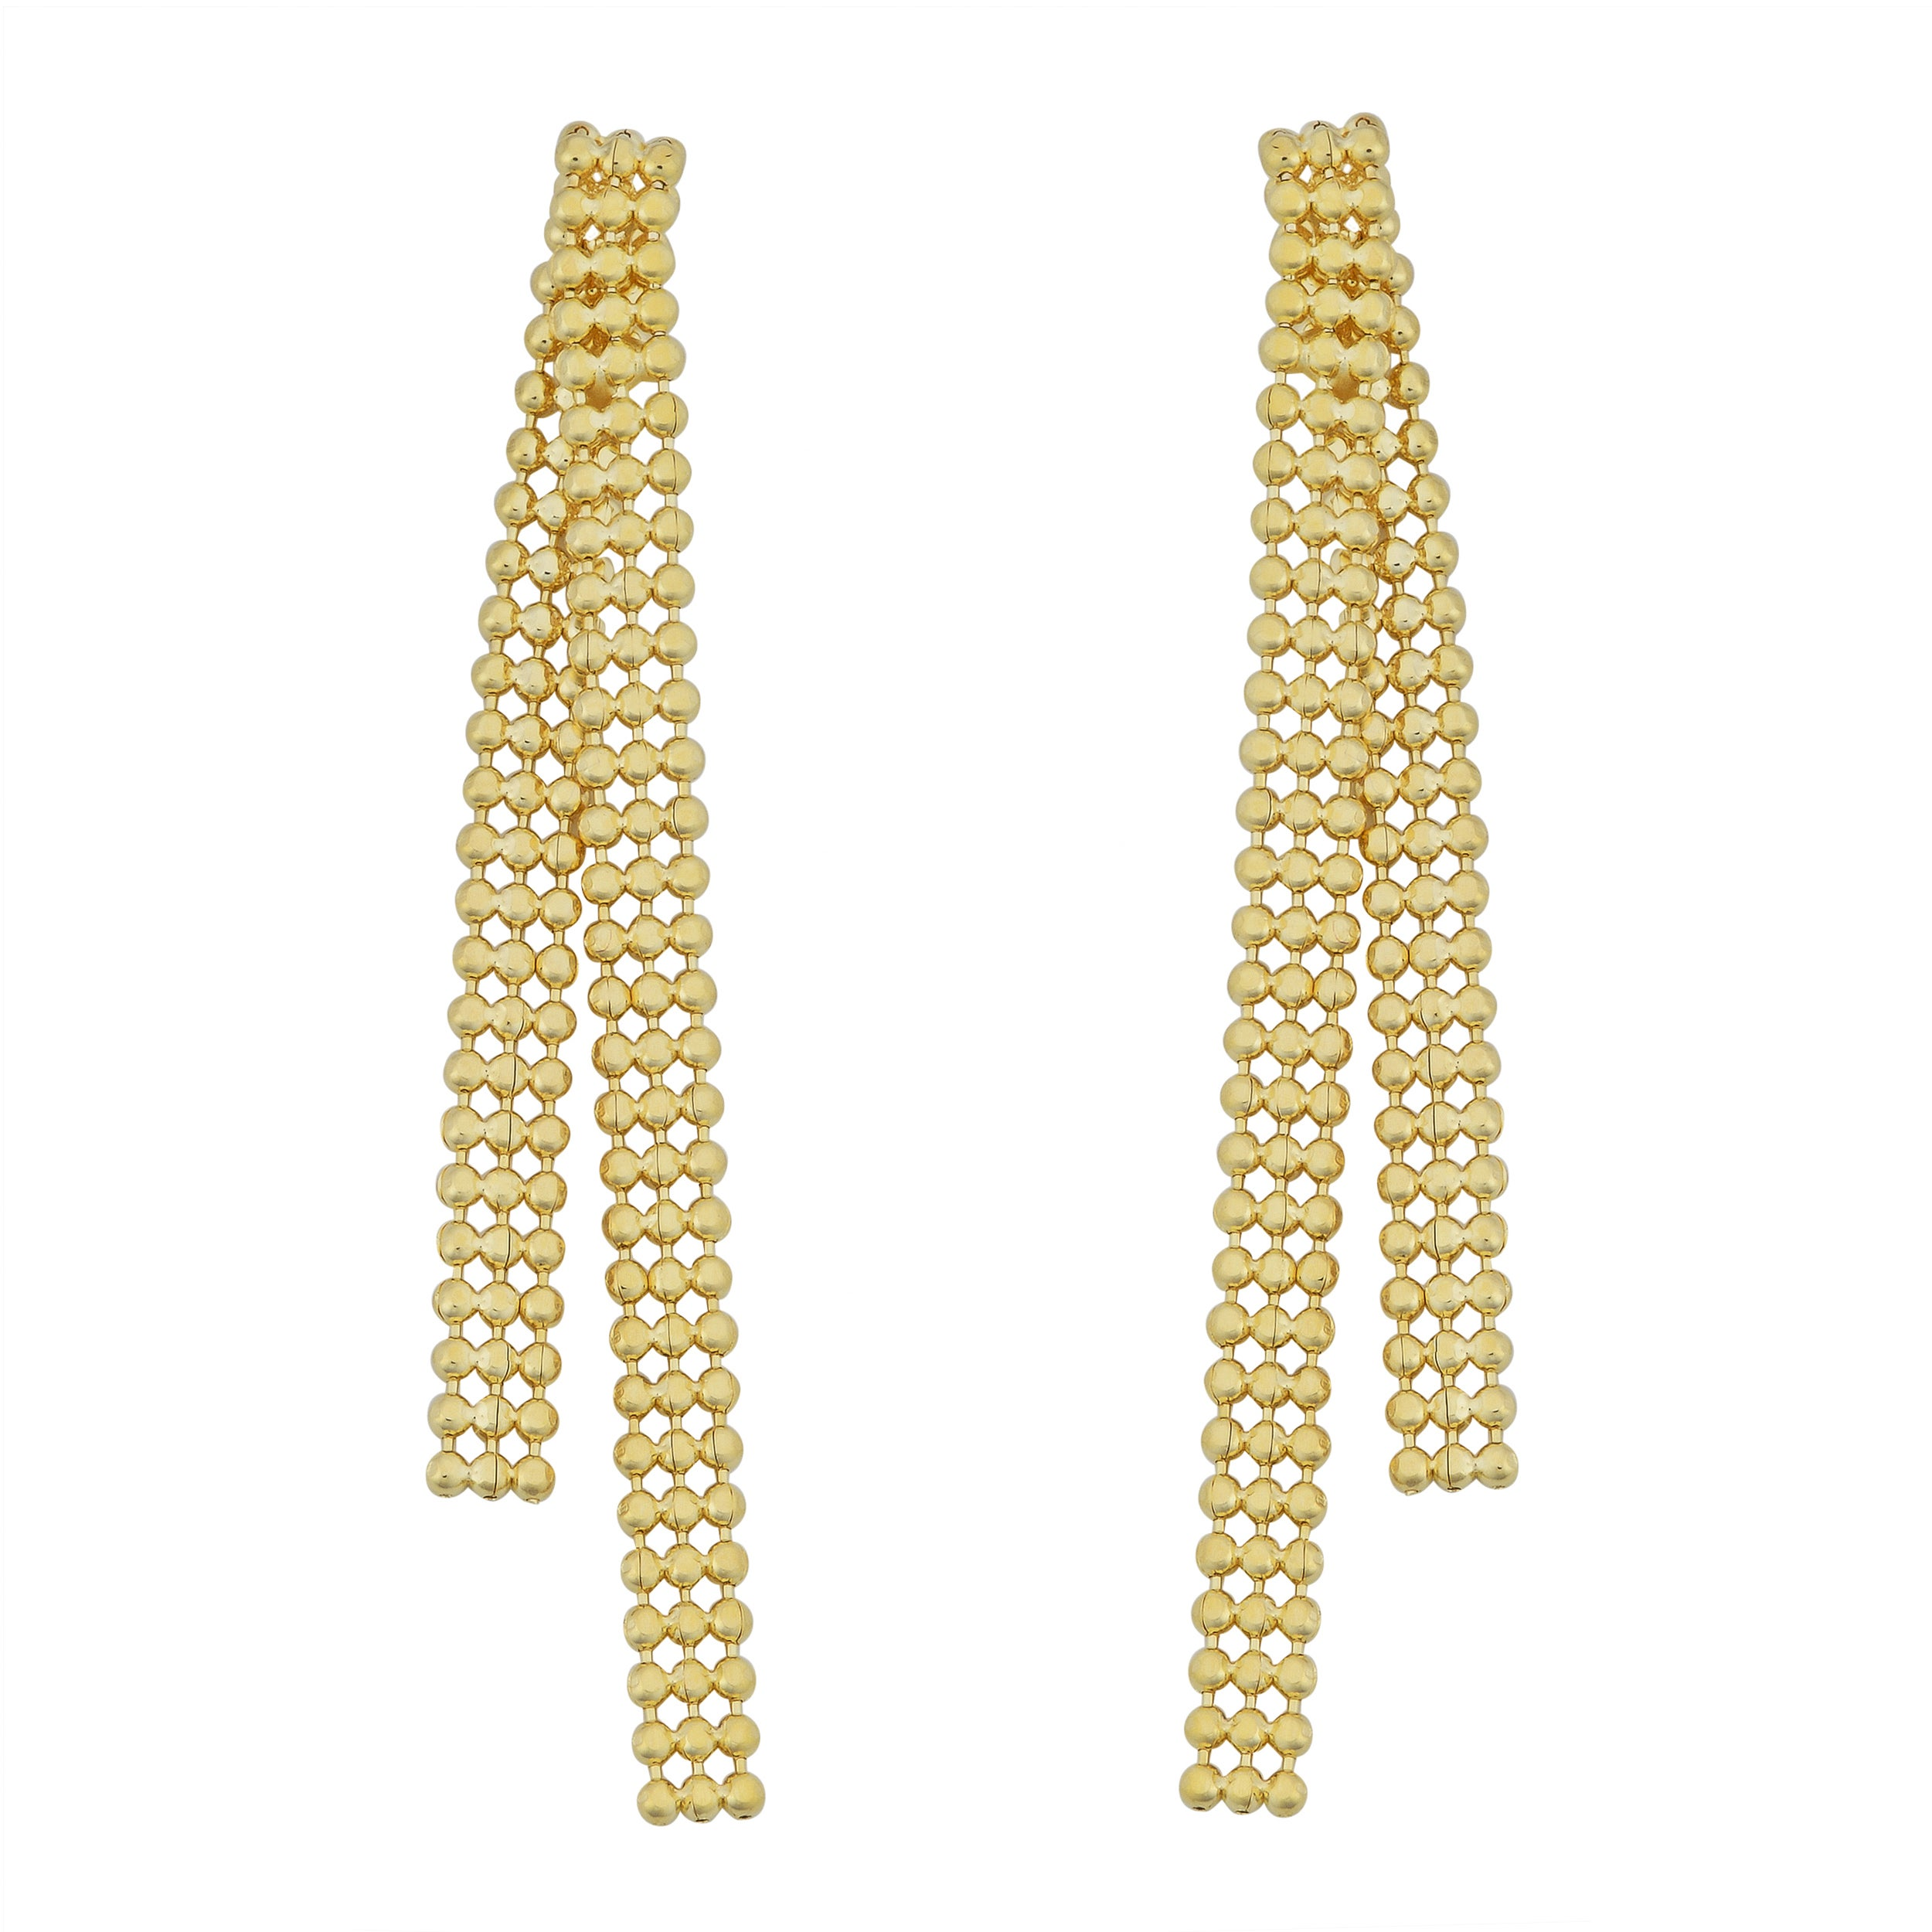 roberto jewels set gold earrings top jewellers italian coin rock by baselworld jewellery haute at trends diamonds